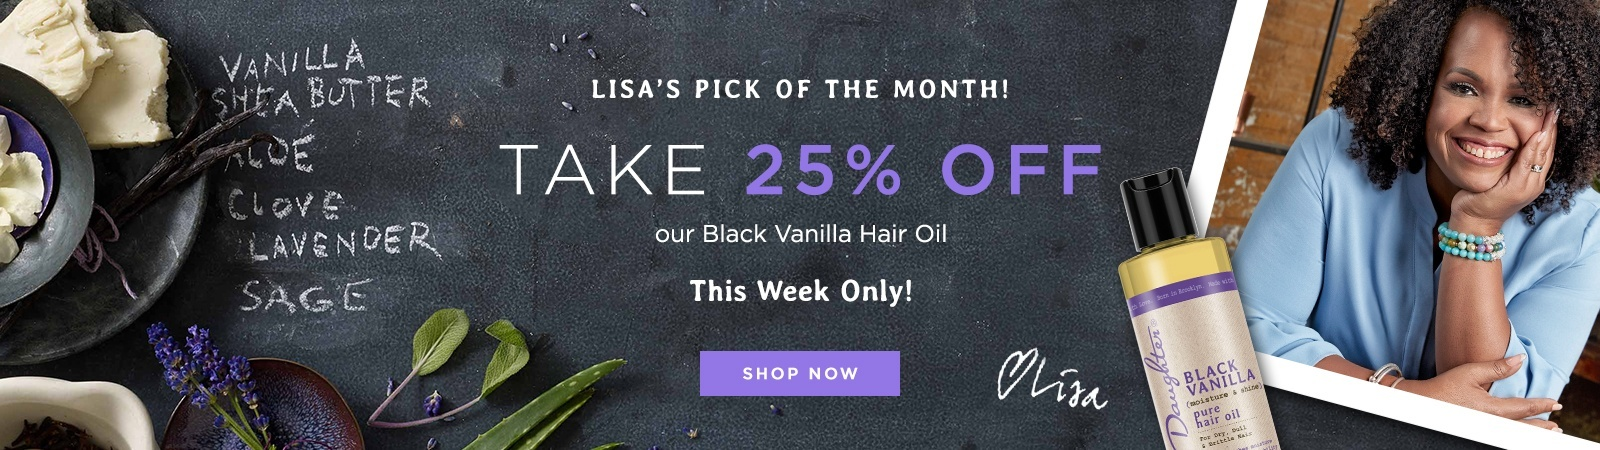 Lisa's Pick of the Month